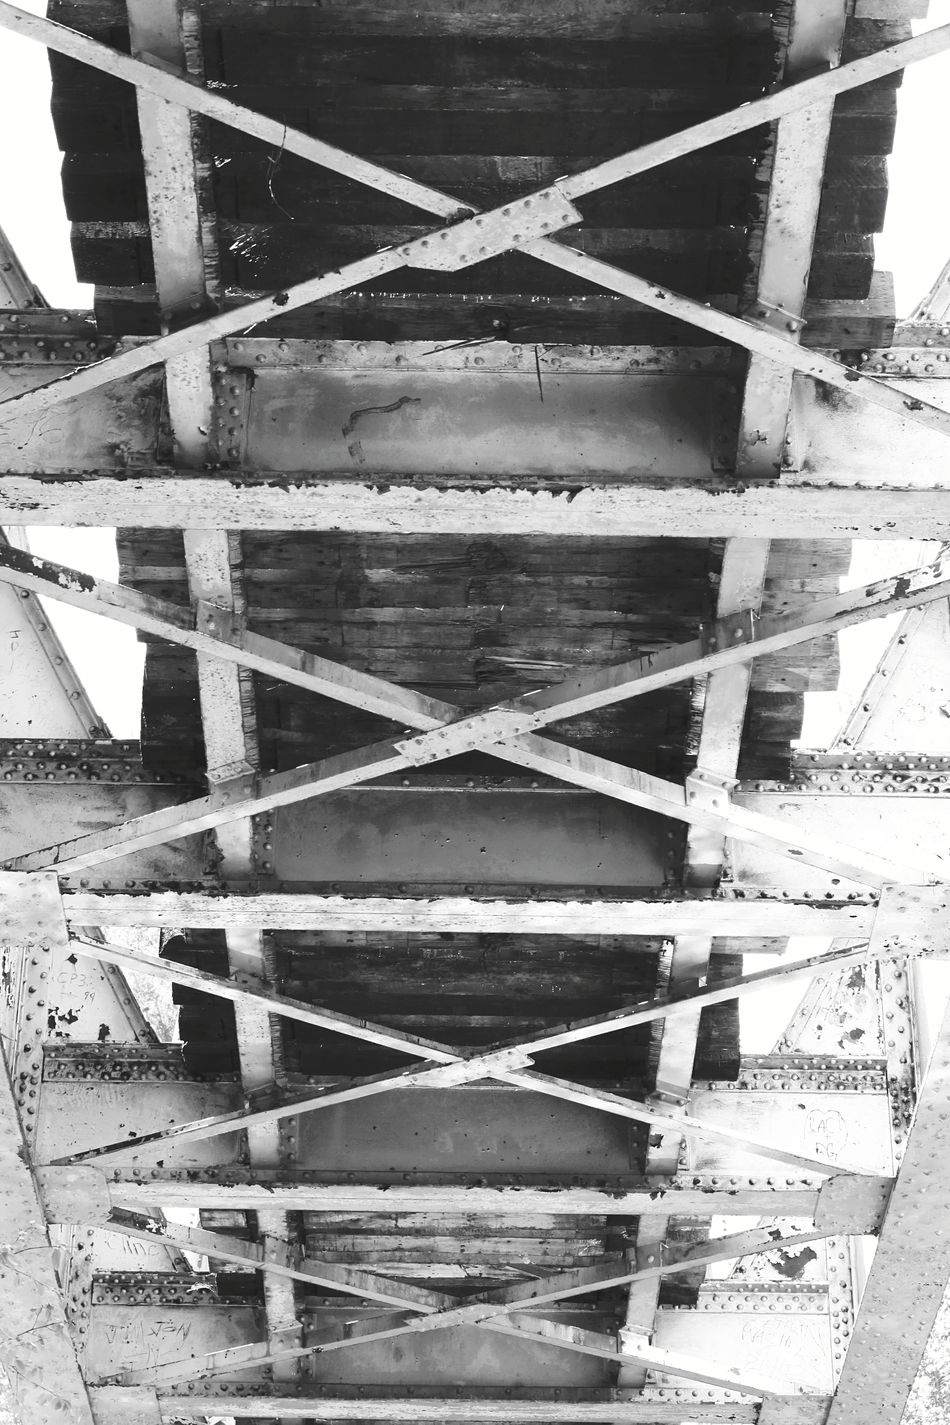 Indoors  No People Day Close-up Nature Black And White Northern California Railroad Track Bridge - Man Made Structure Bridge Textured  Landscape Under The Bridge Looking Up Under Unique Perspectives Shadows Low Angle View